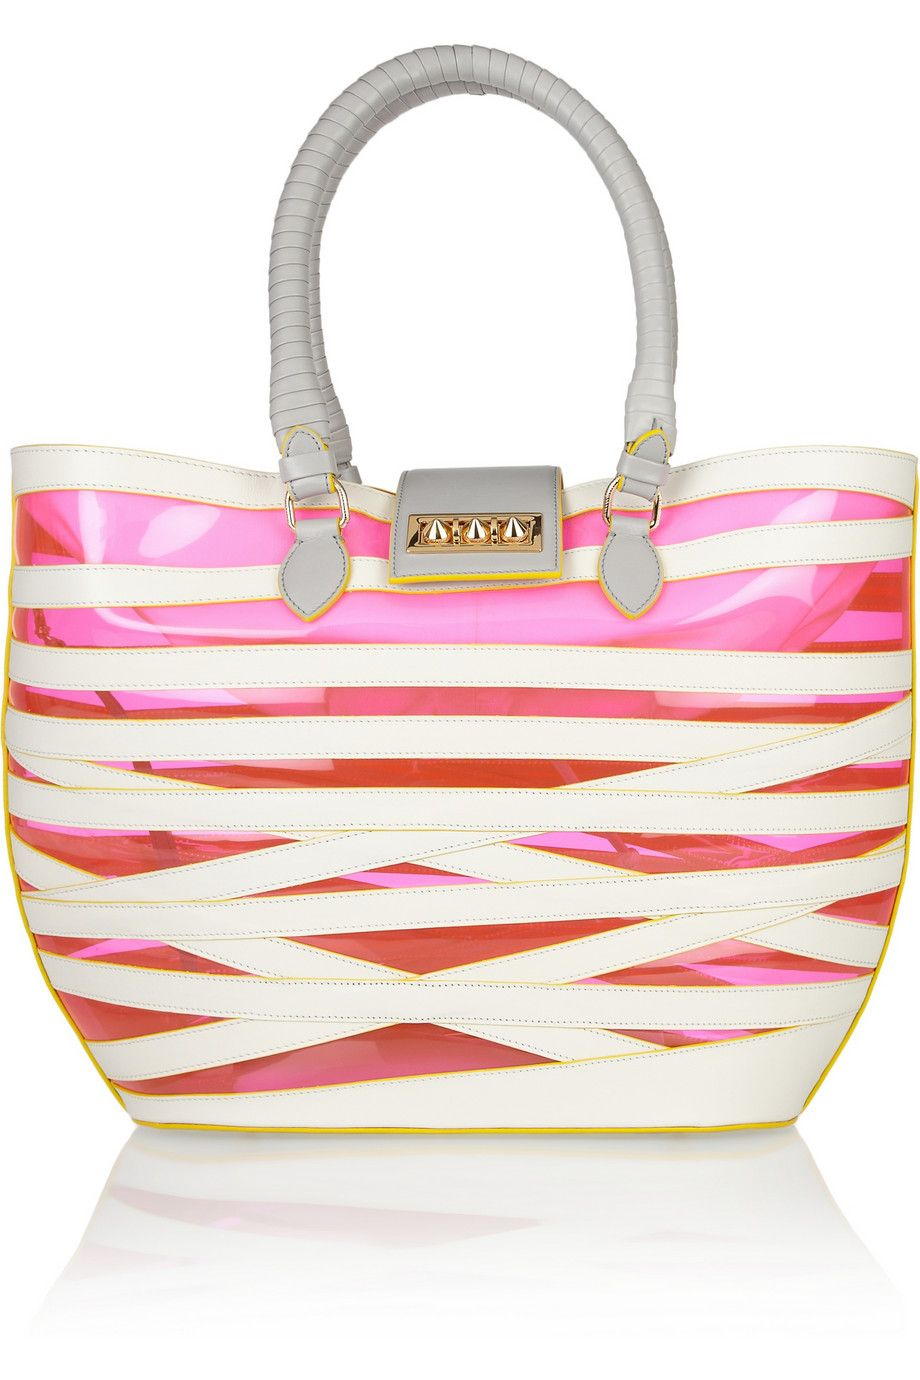 Christian Louboutin | Padam leather and PVC tote  | NET-A-PORTER.CO